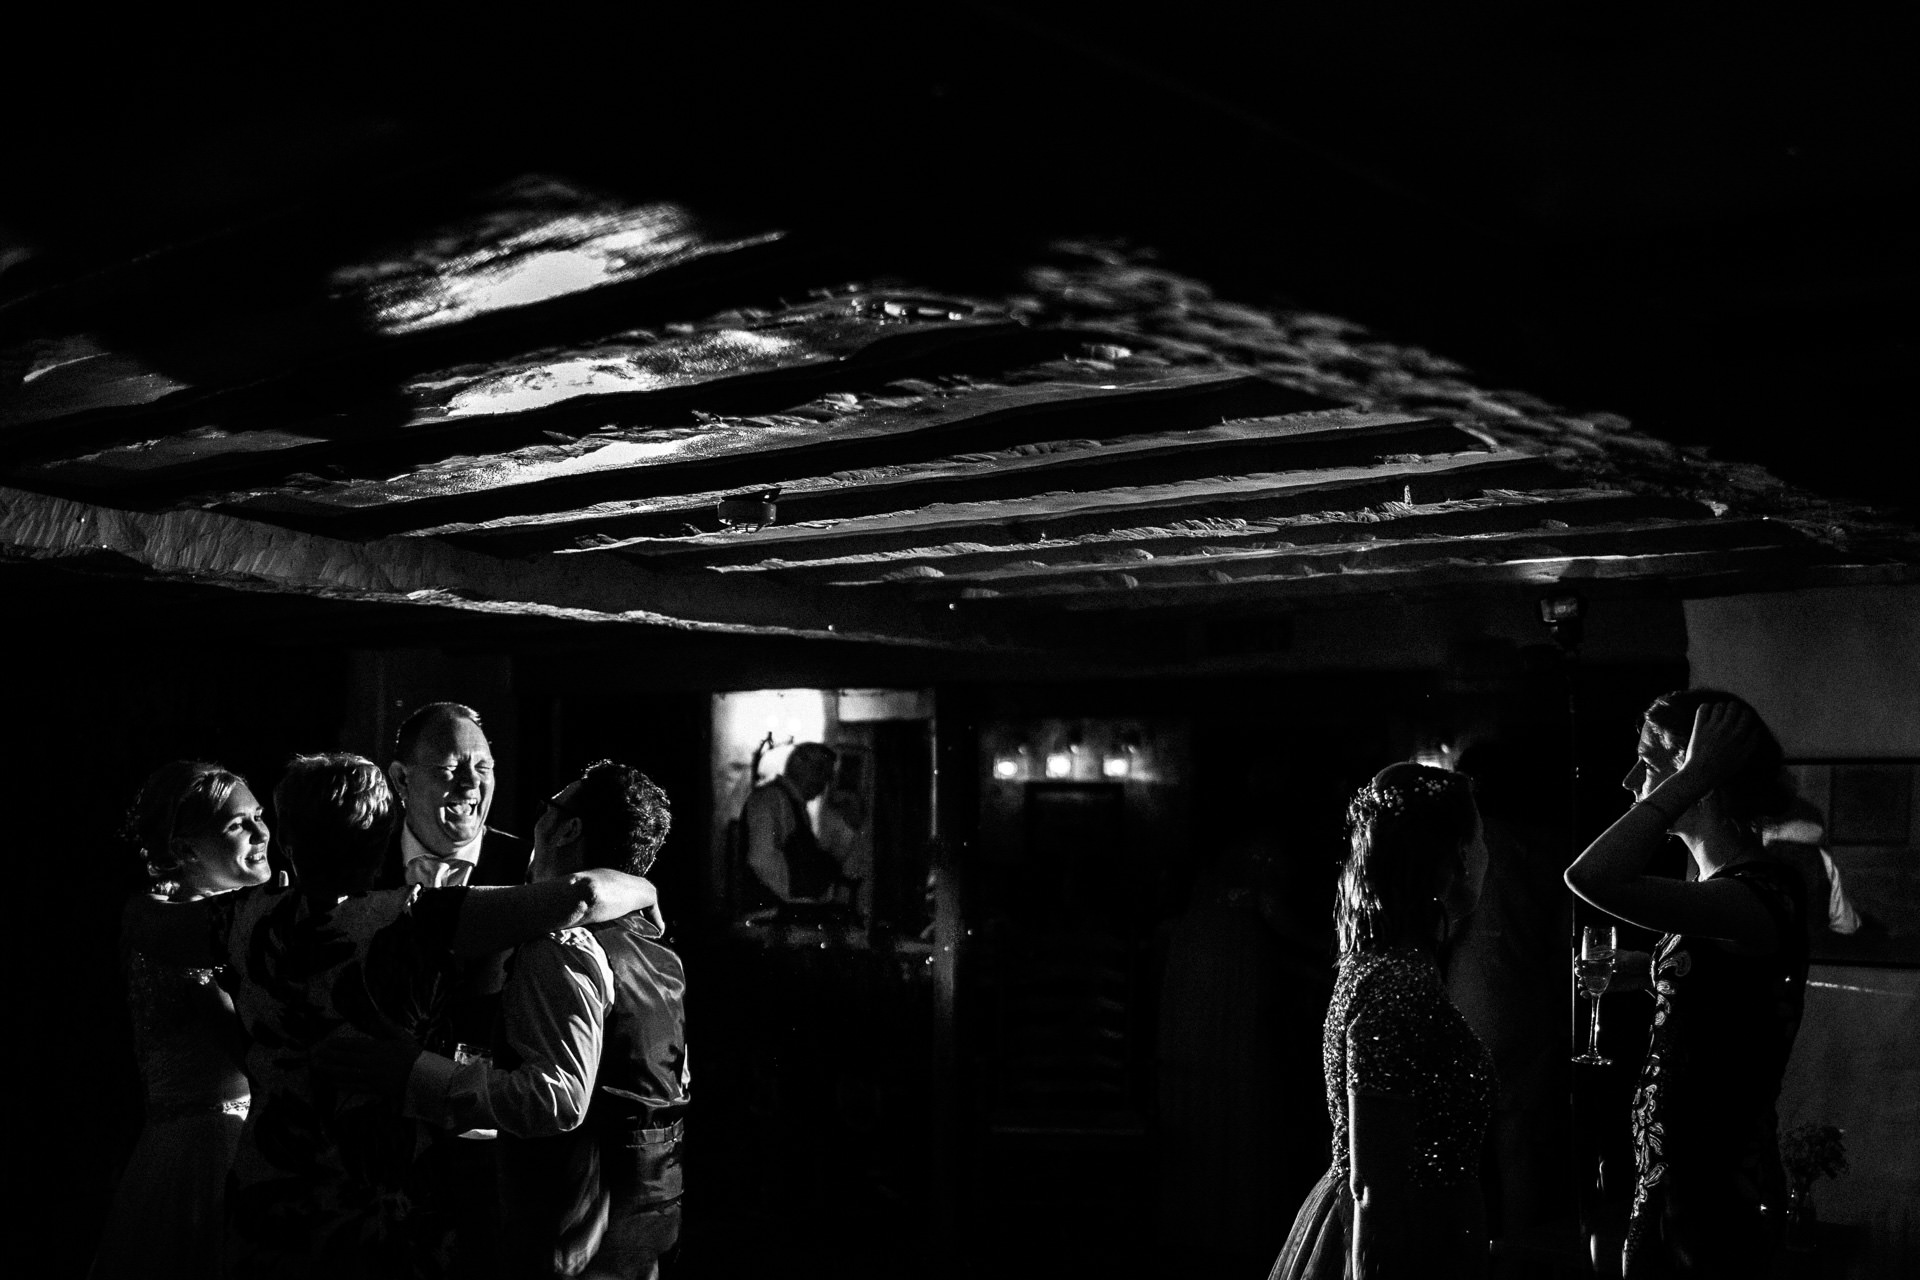 The Wild Boar Wedding Photography - EM - black and white of guests dancing